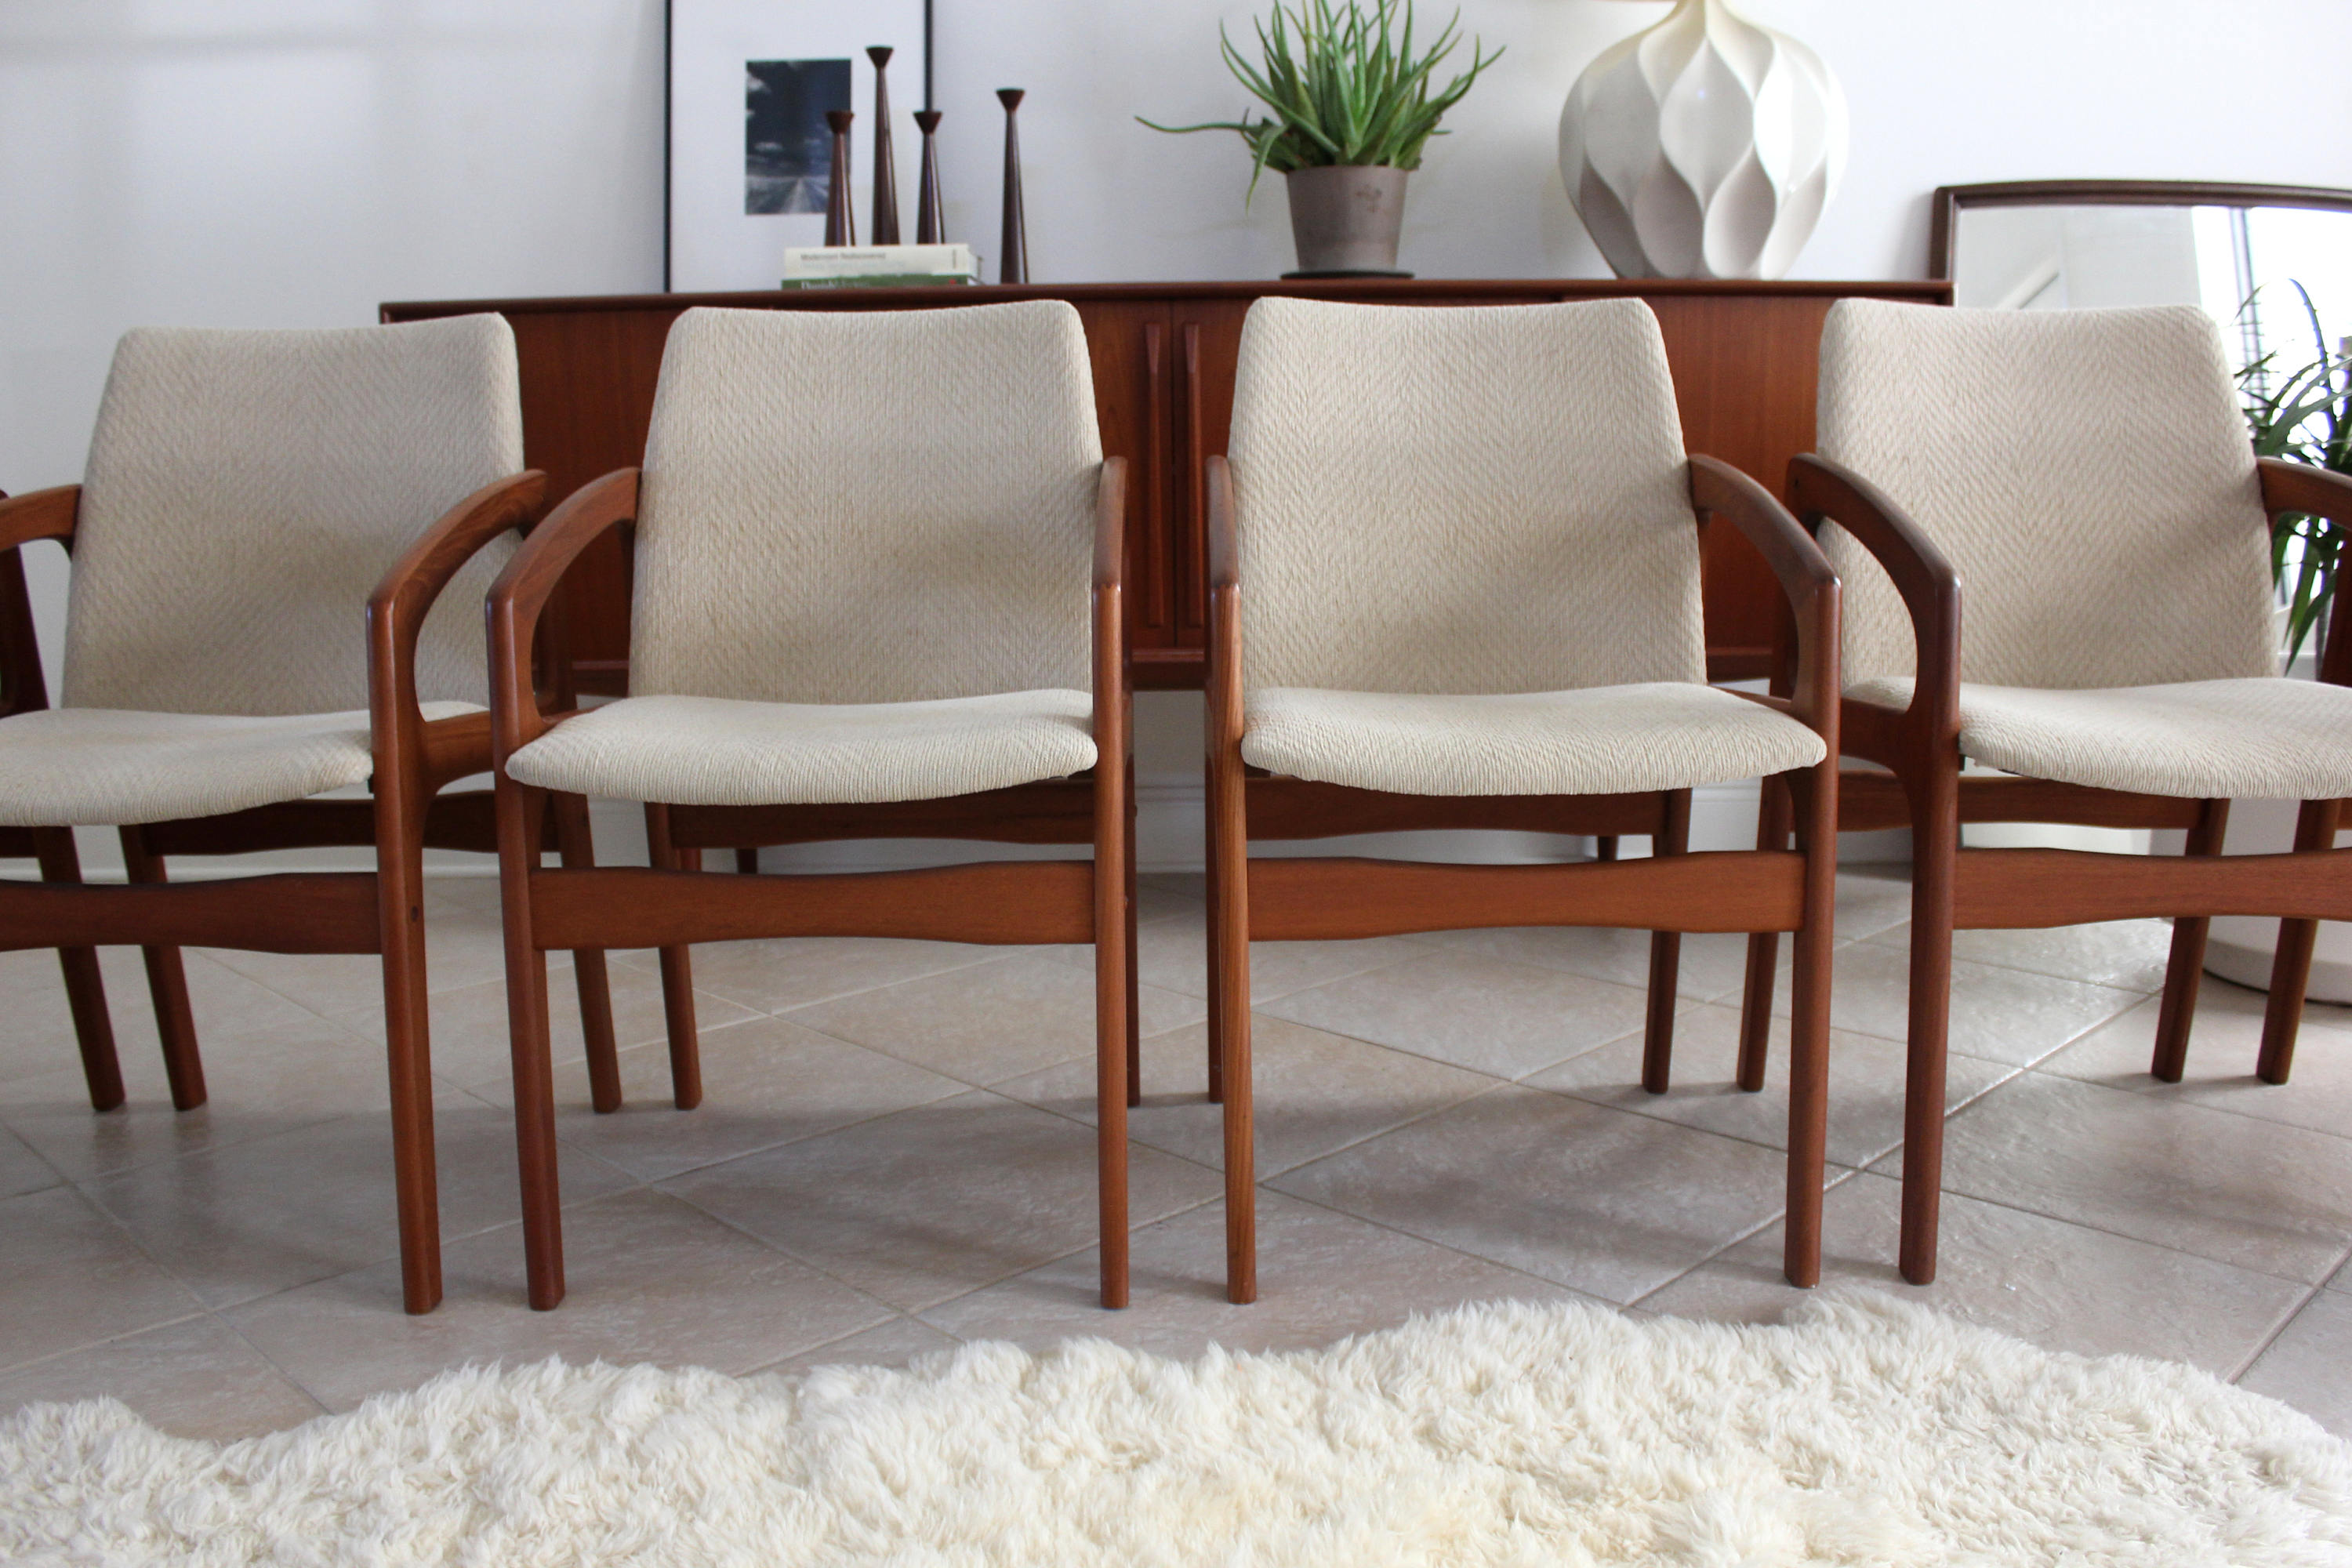 Danish Modern Dining Chairs For Sale Sold Do Not Purchase Danish Modern Dining Chairs Set Of Six In